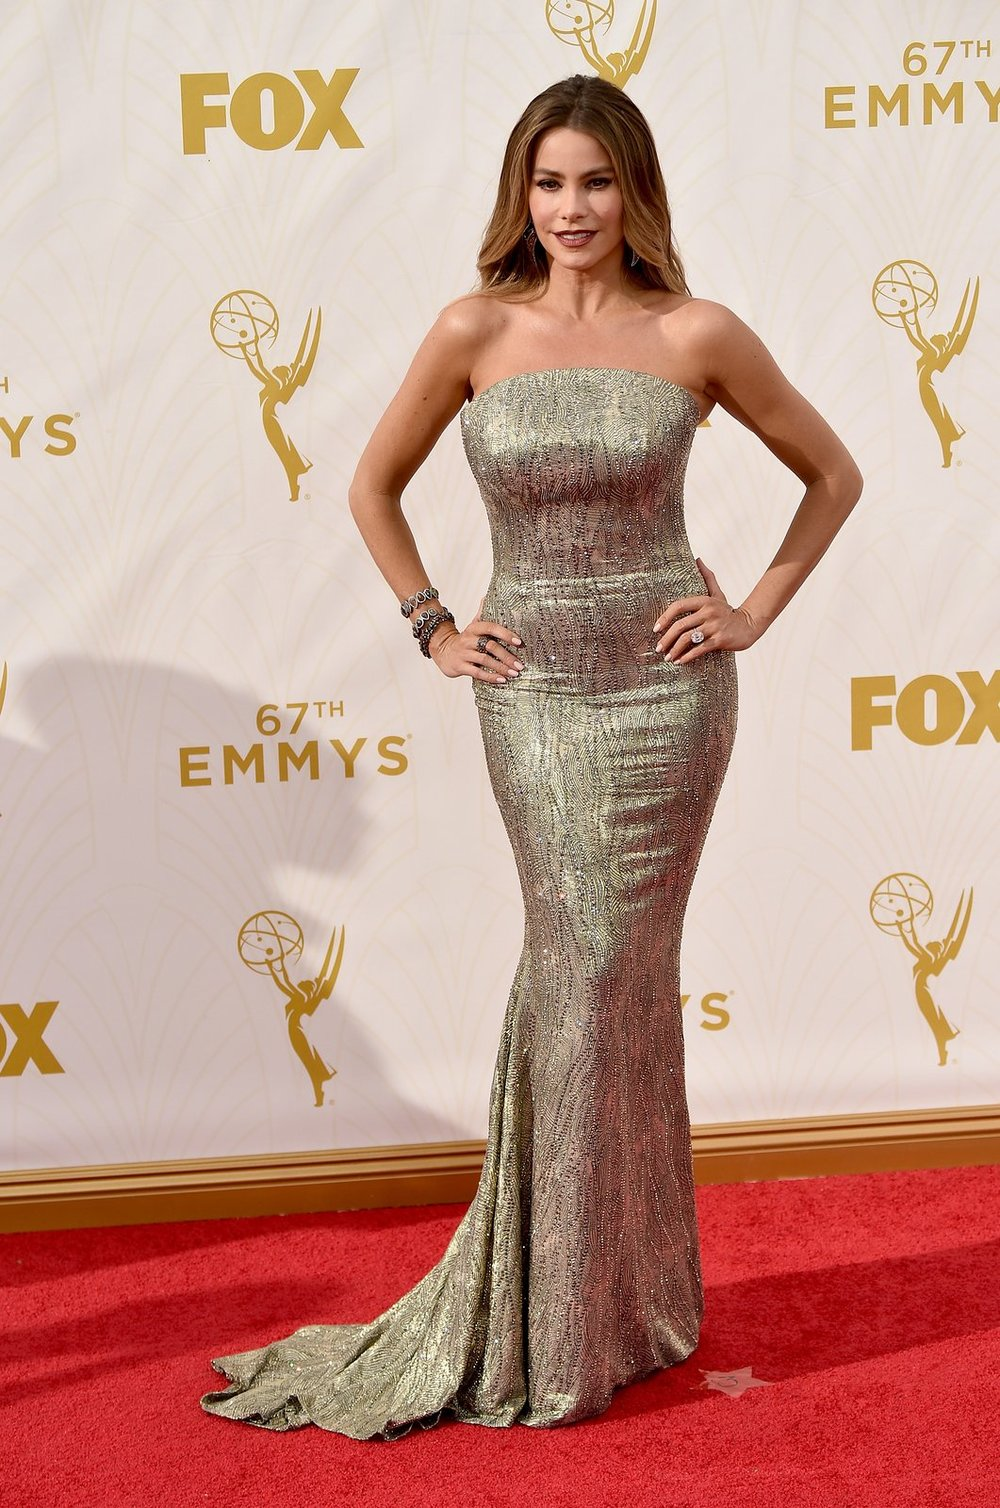 sofia-vergara-emmys-red-carpet-2015.jpg